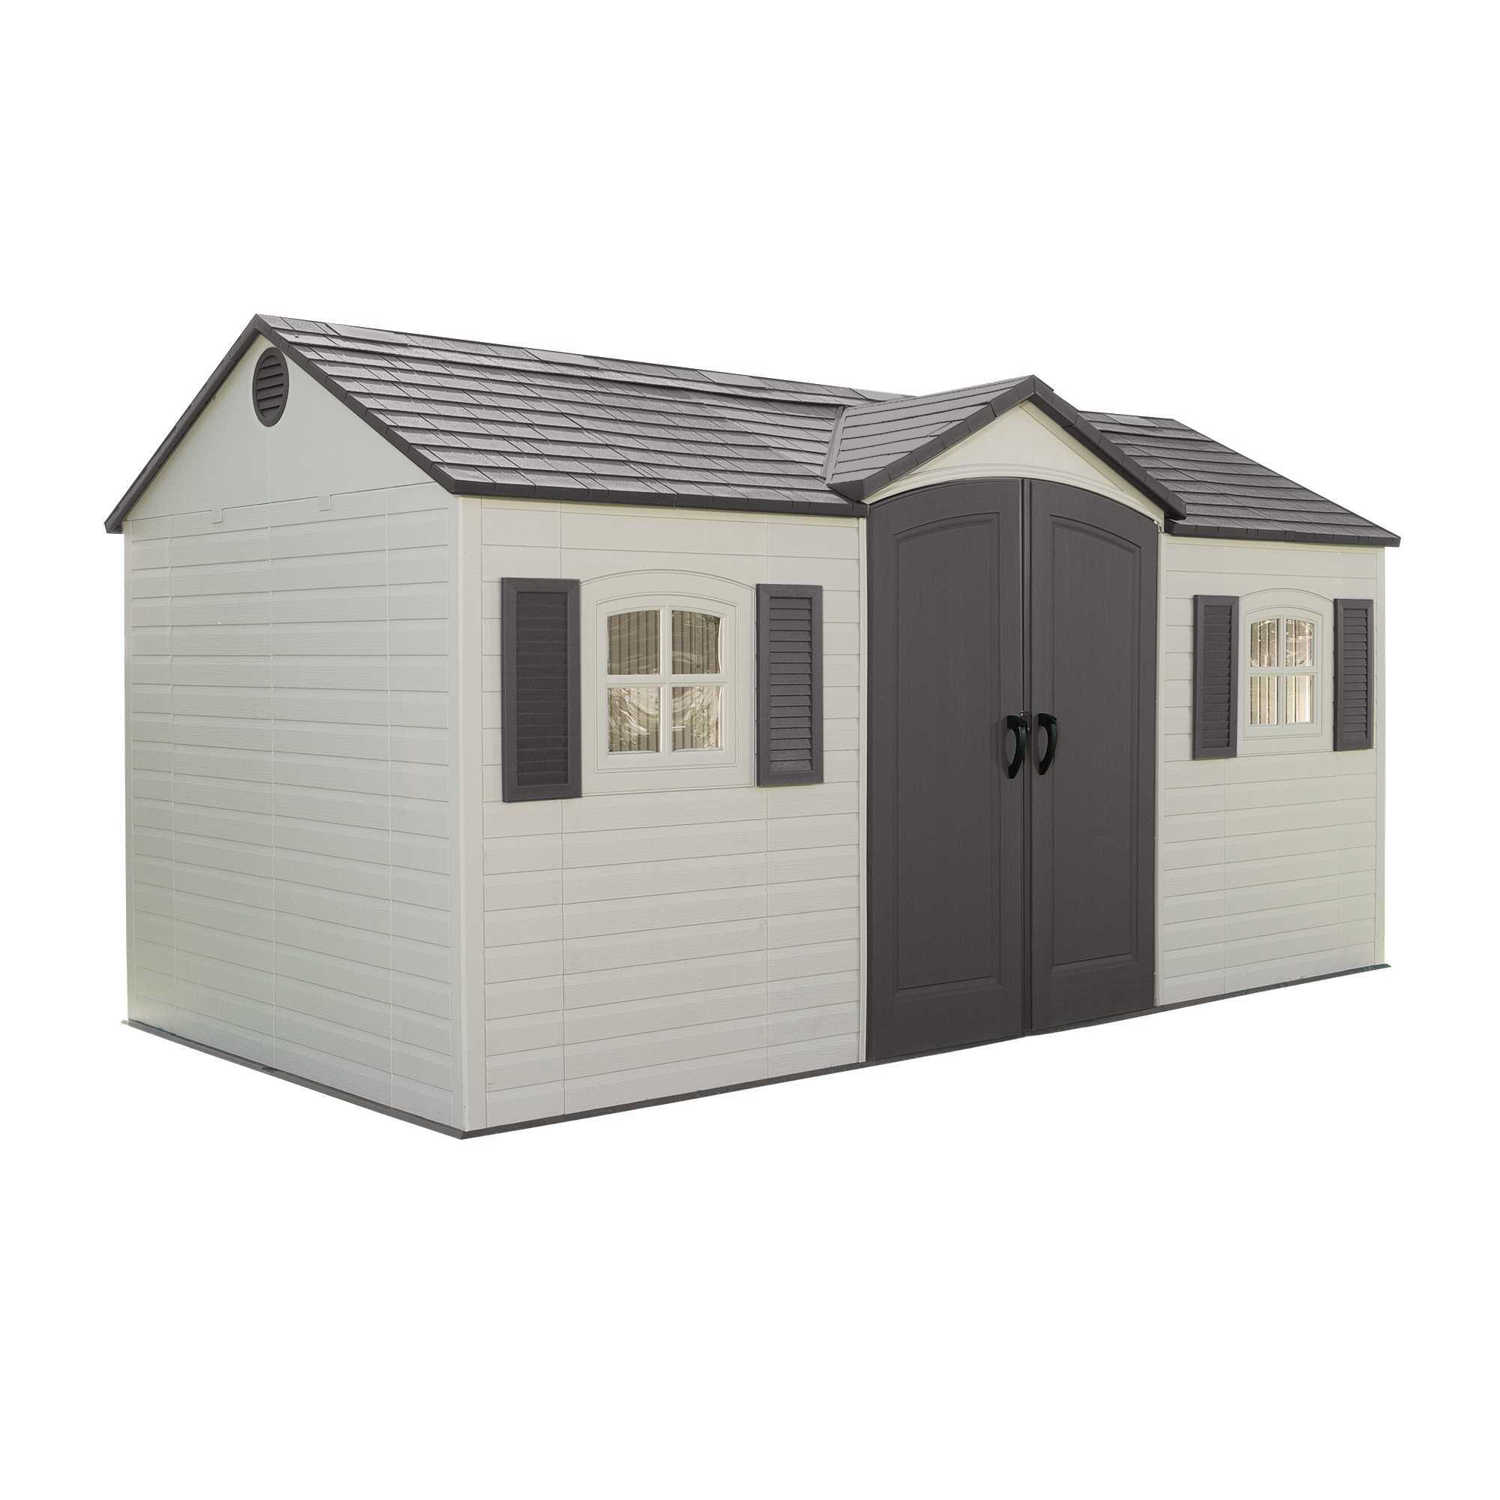 chris purchased cabin vacation at agrimarques x shed and photo com their holly duramax sheds of home studios modern twin